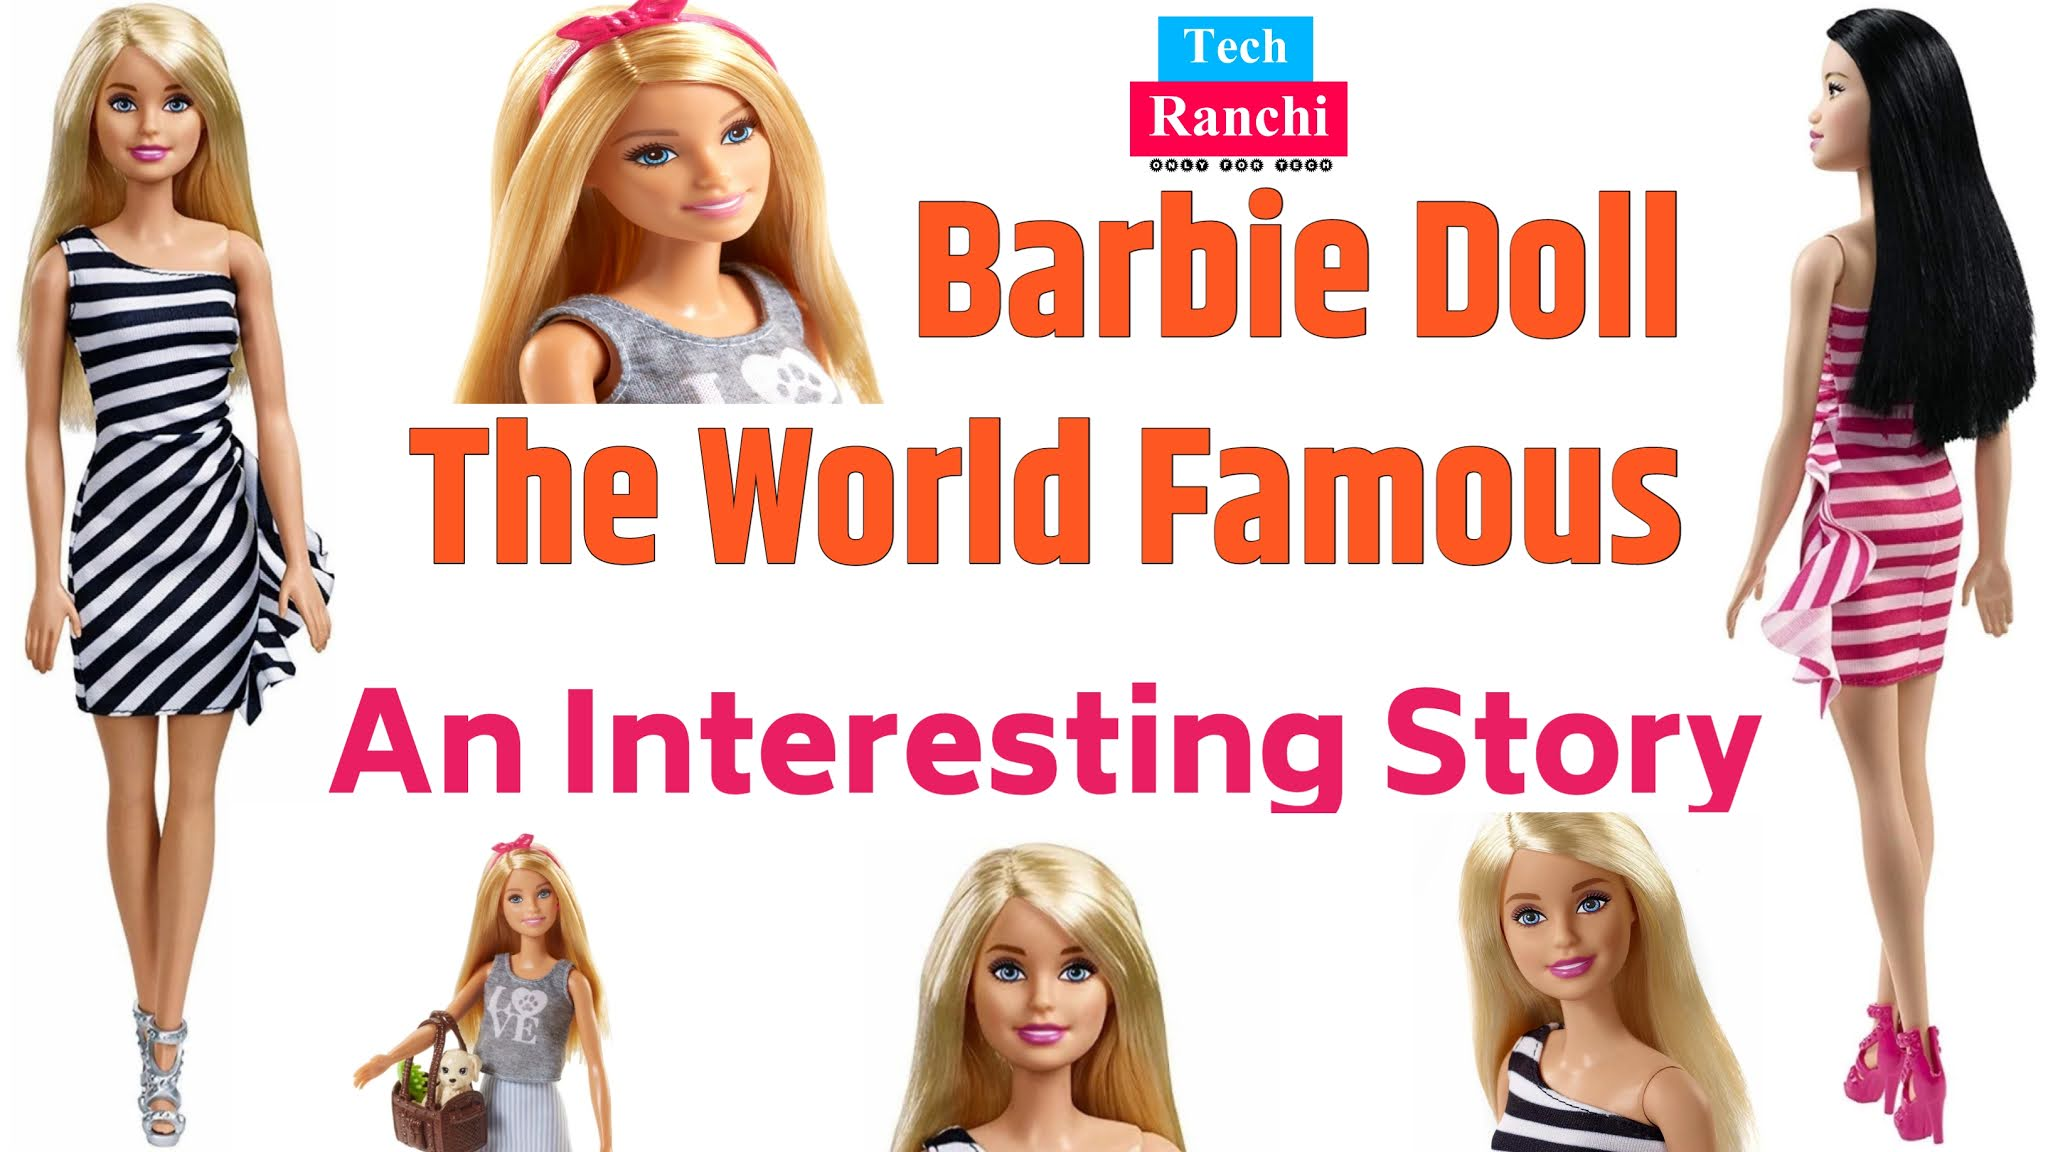 World Famous Popular Doll,tech,Barbie Doll,Barbie Doll World Famous Doll,Techranchi,Barbie,